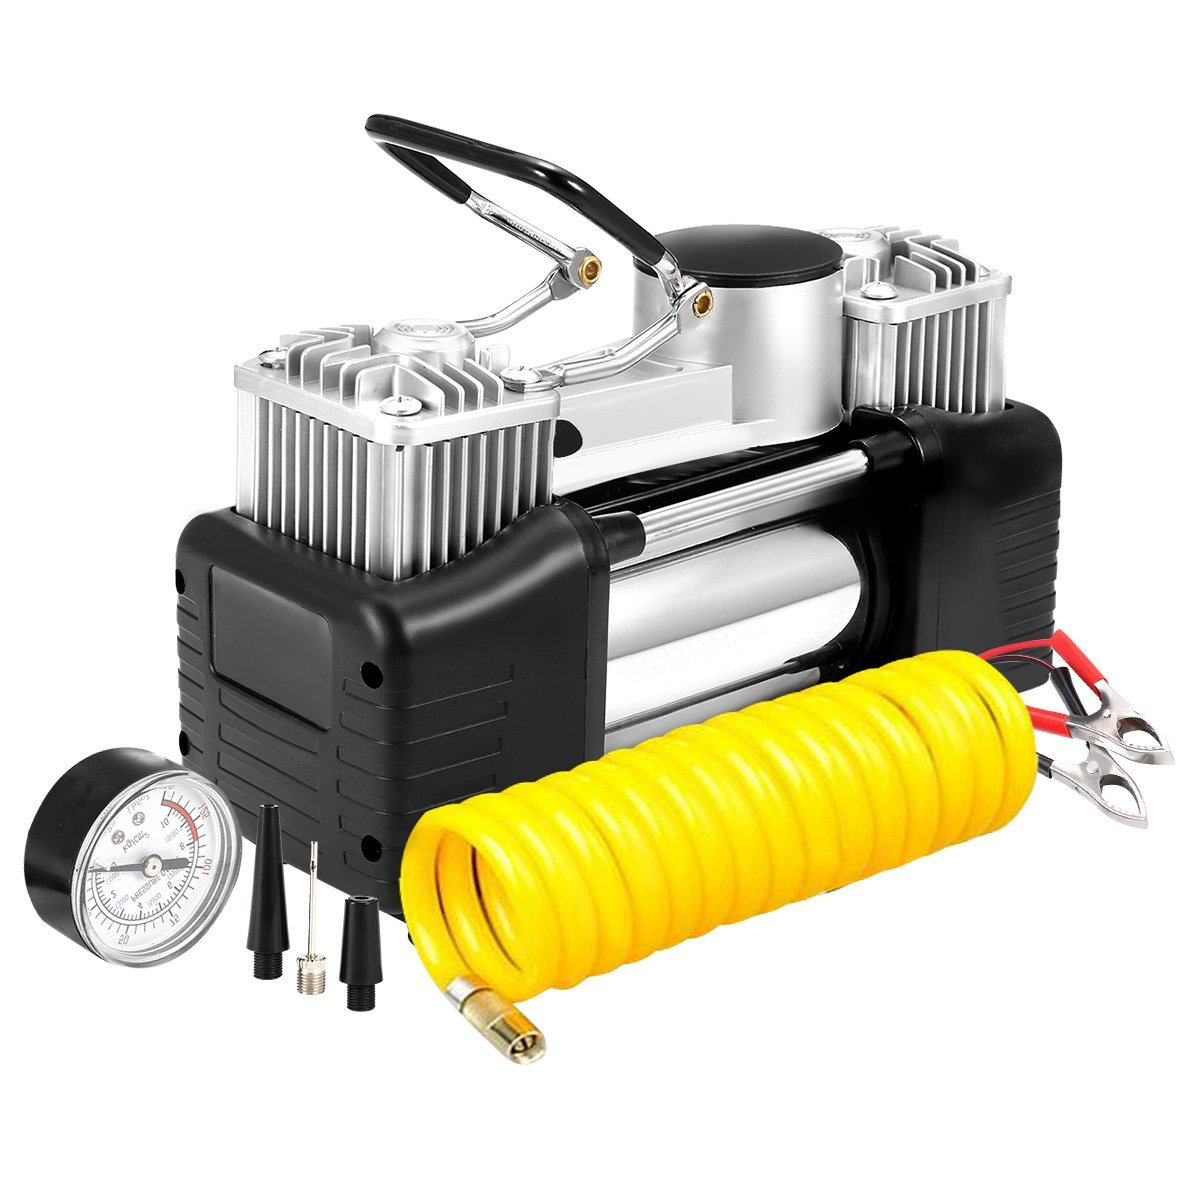 Heavy Duty Double Cylinders 12V Air Compressor Pump with LED Light for Auto,Truck,Car,Bicycles and Other Inflatables GSPSCN Portable Digital Car Tyre Inflator with Gauge 150Psi Auto Shut-Off